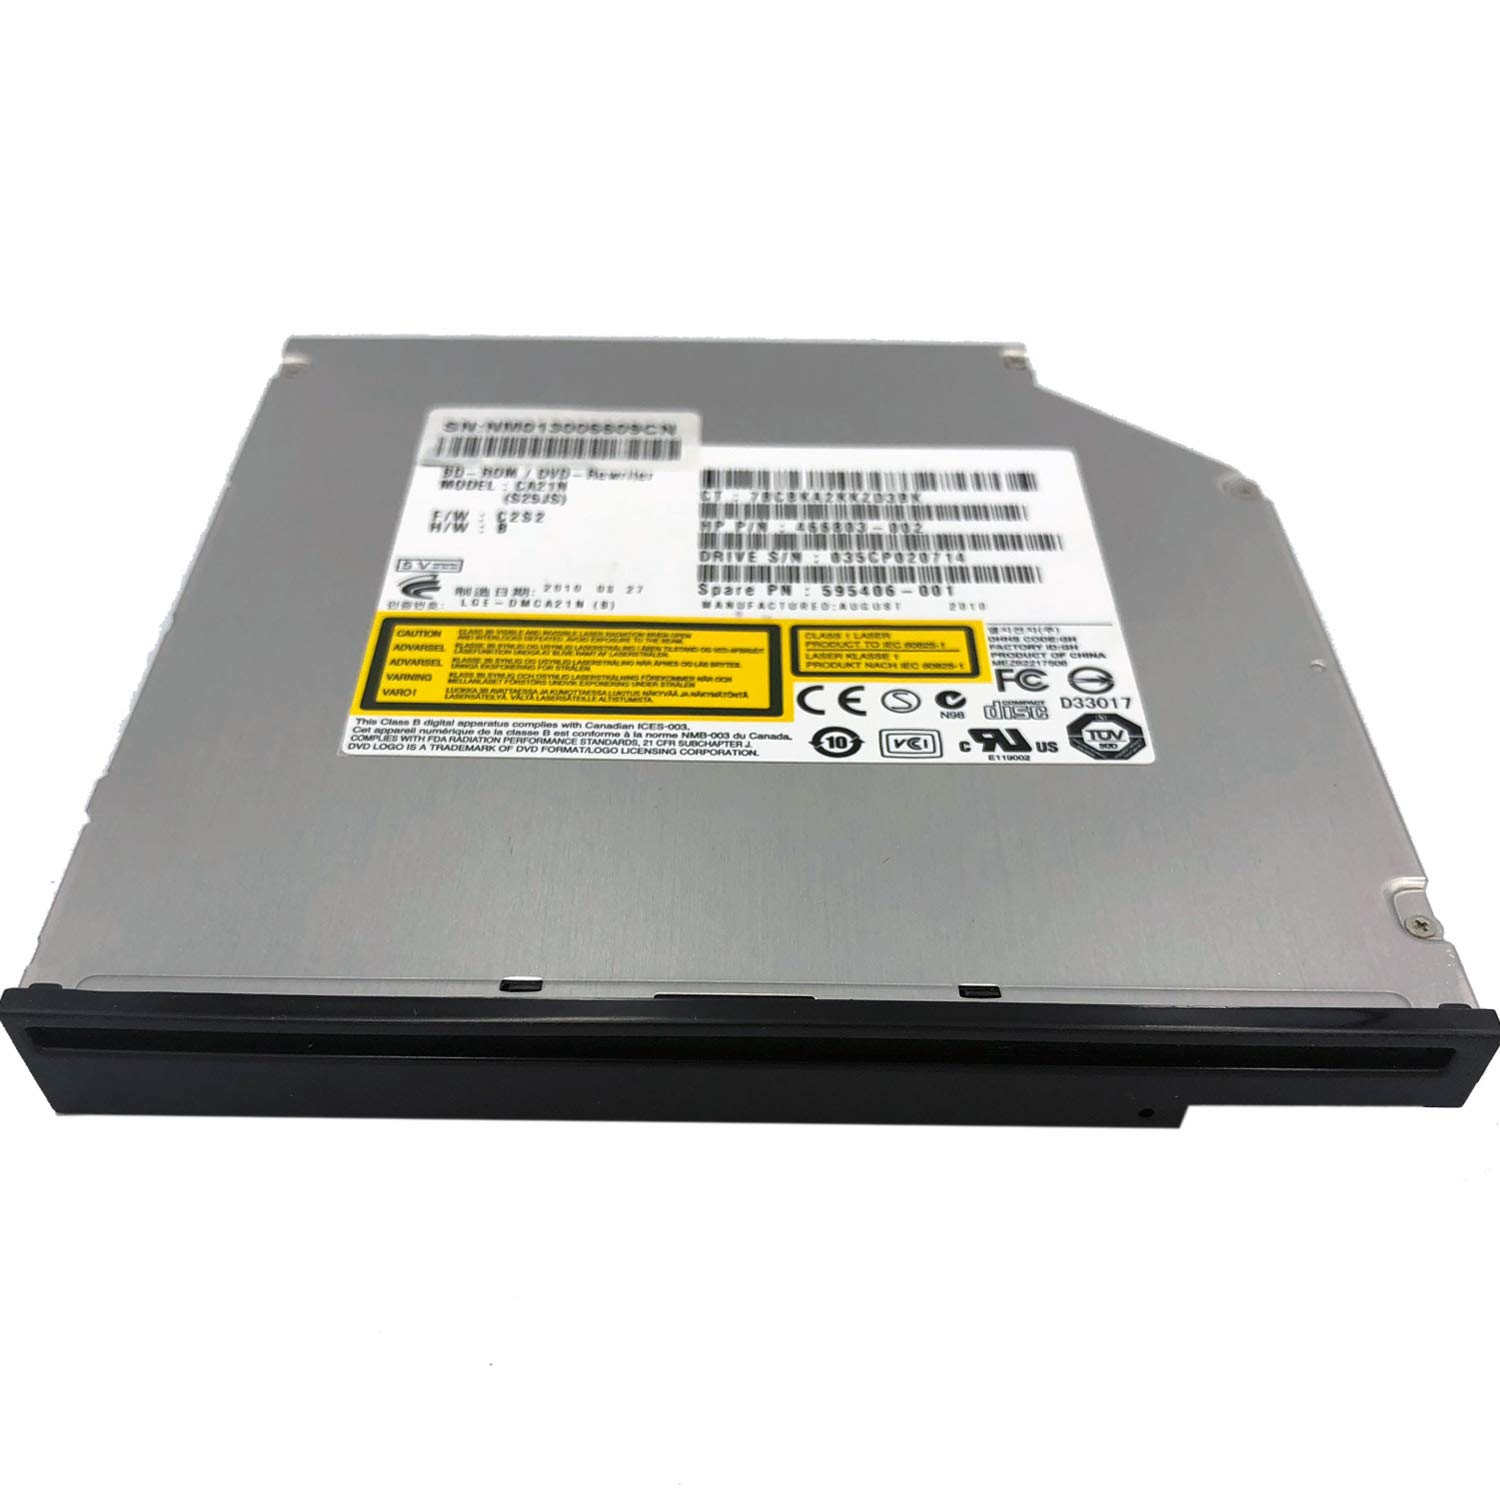 New Internal Blu-ray Reader CA21N SATA Slot in 3D Blu-ray Player DVD CD Writer for iMac Mac Mini and Other laptops